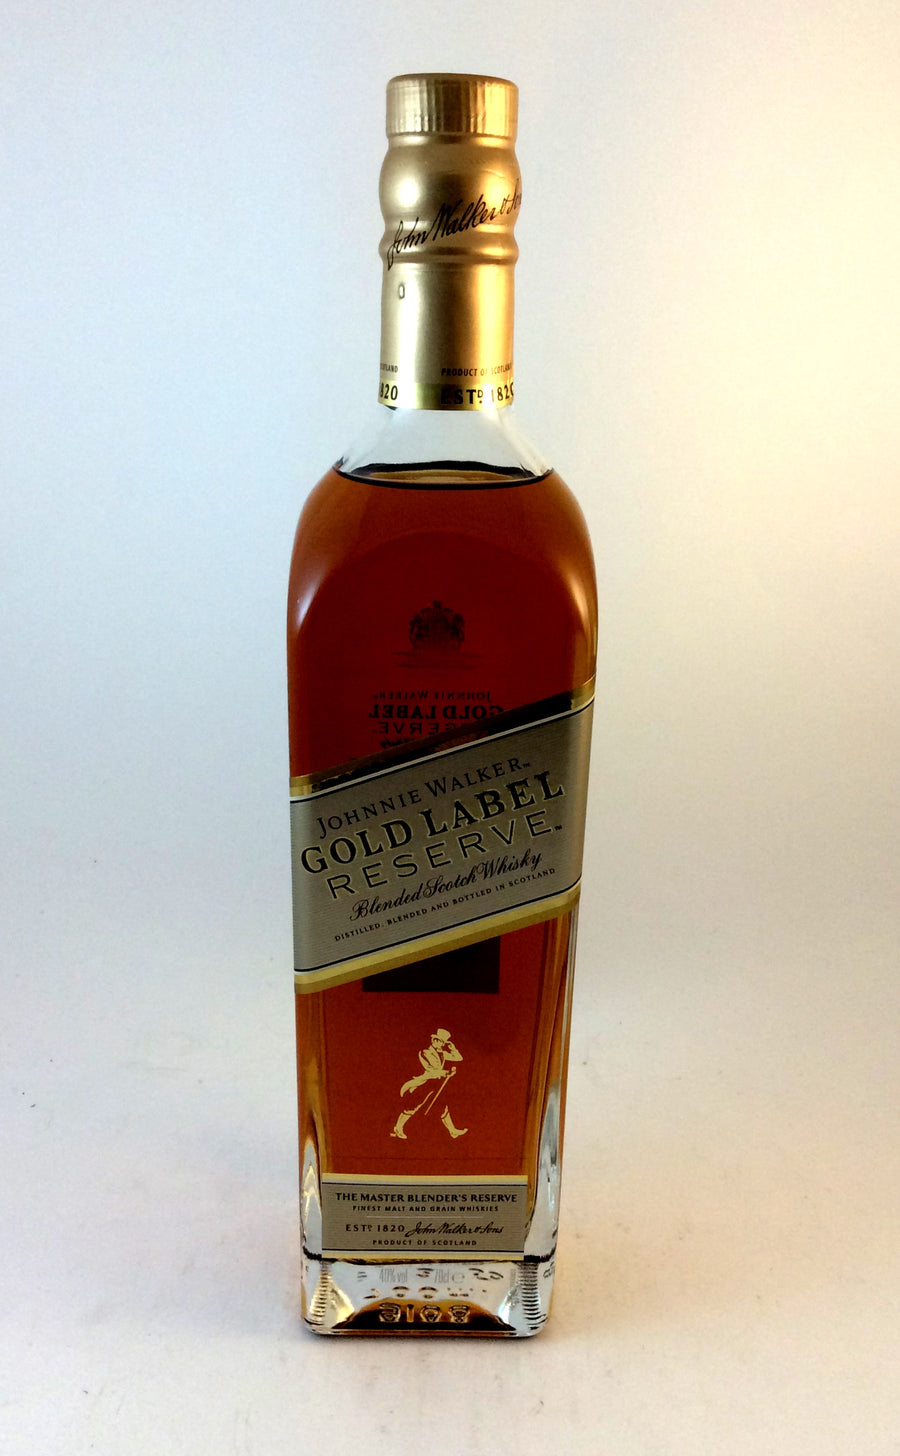 Johnnie Walker Gold Label Reserve - Wineseeker